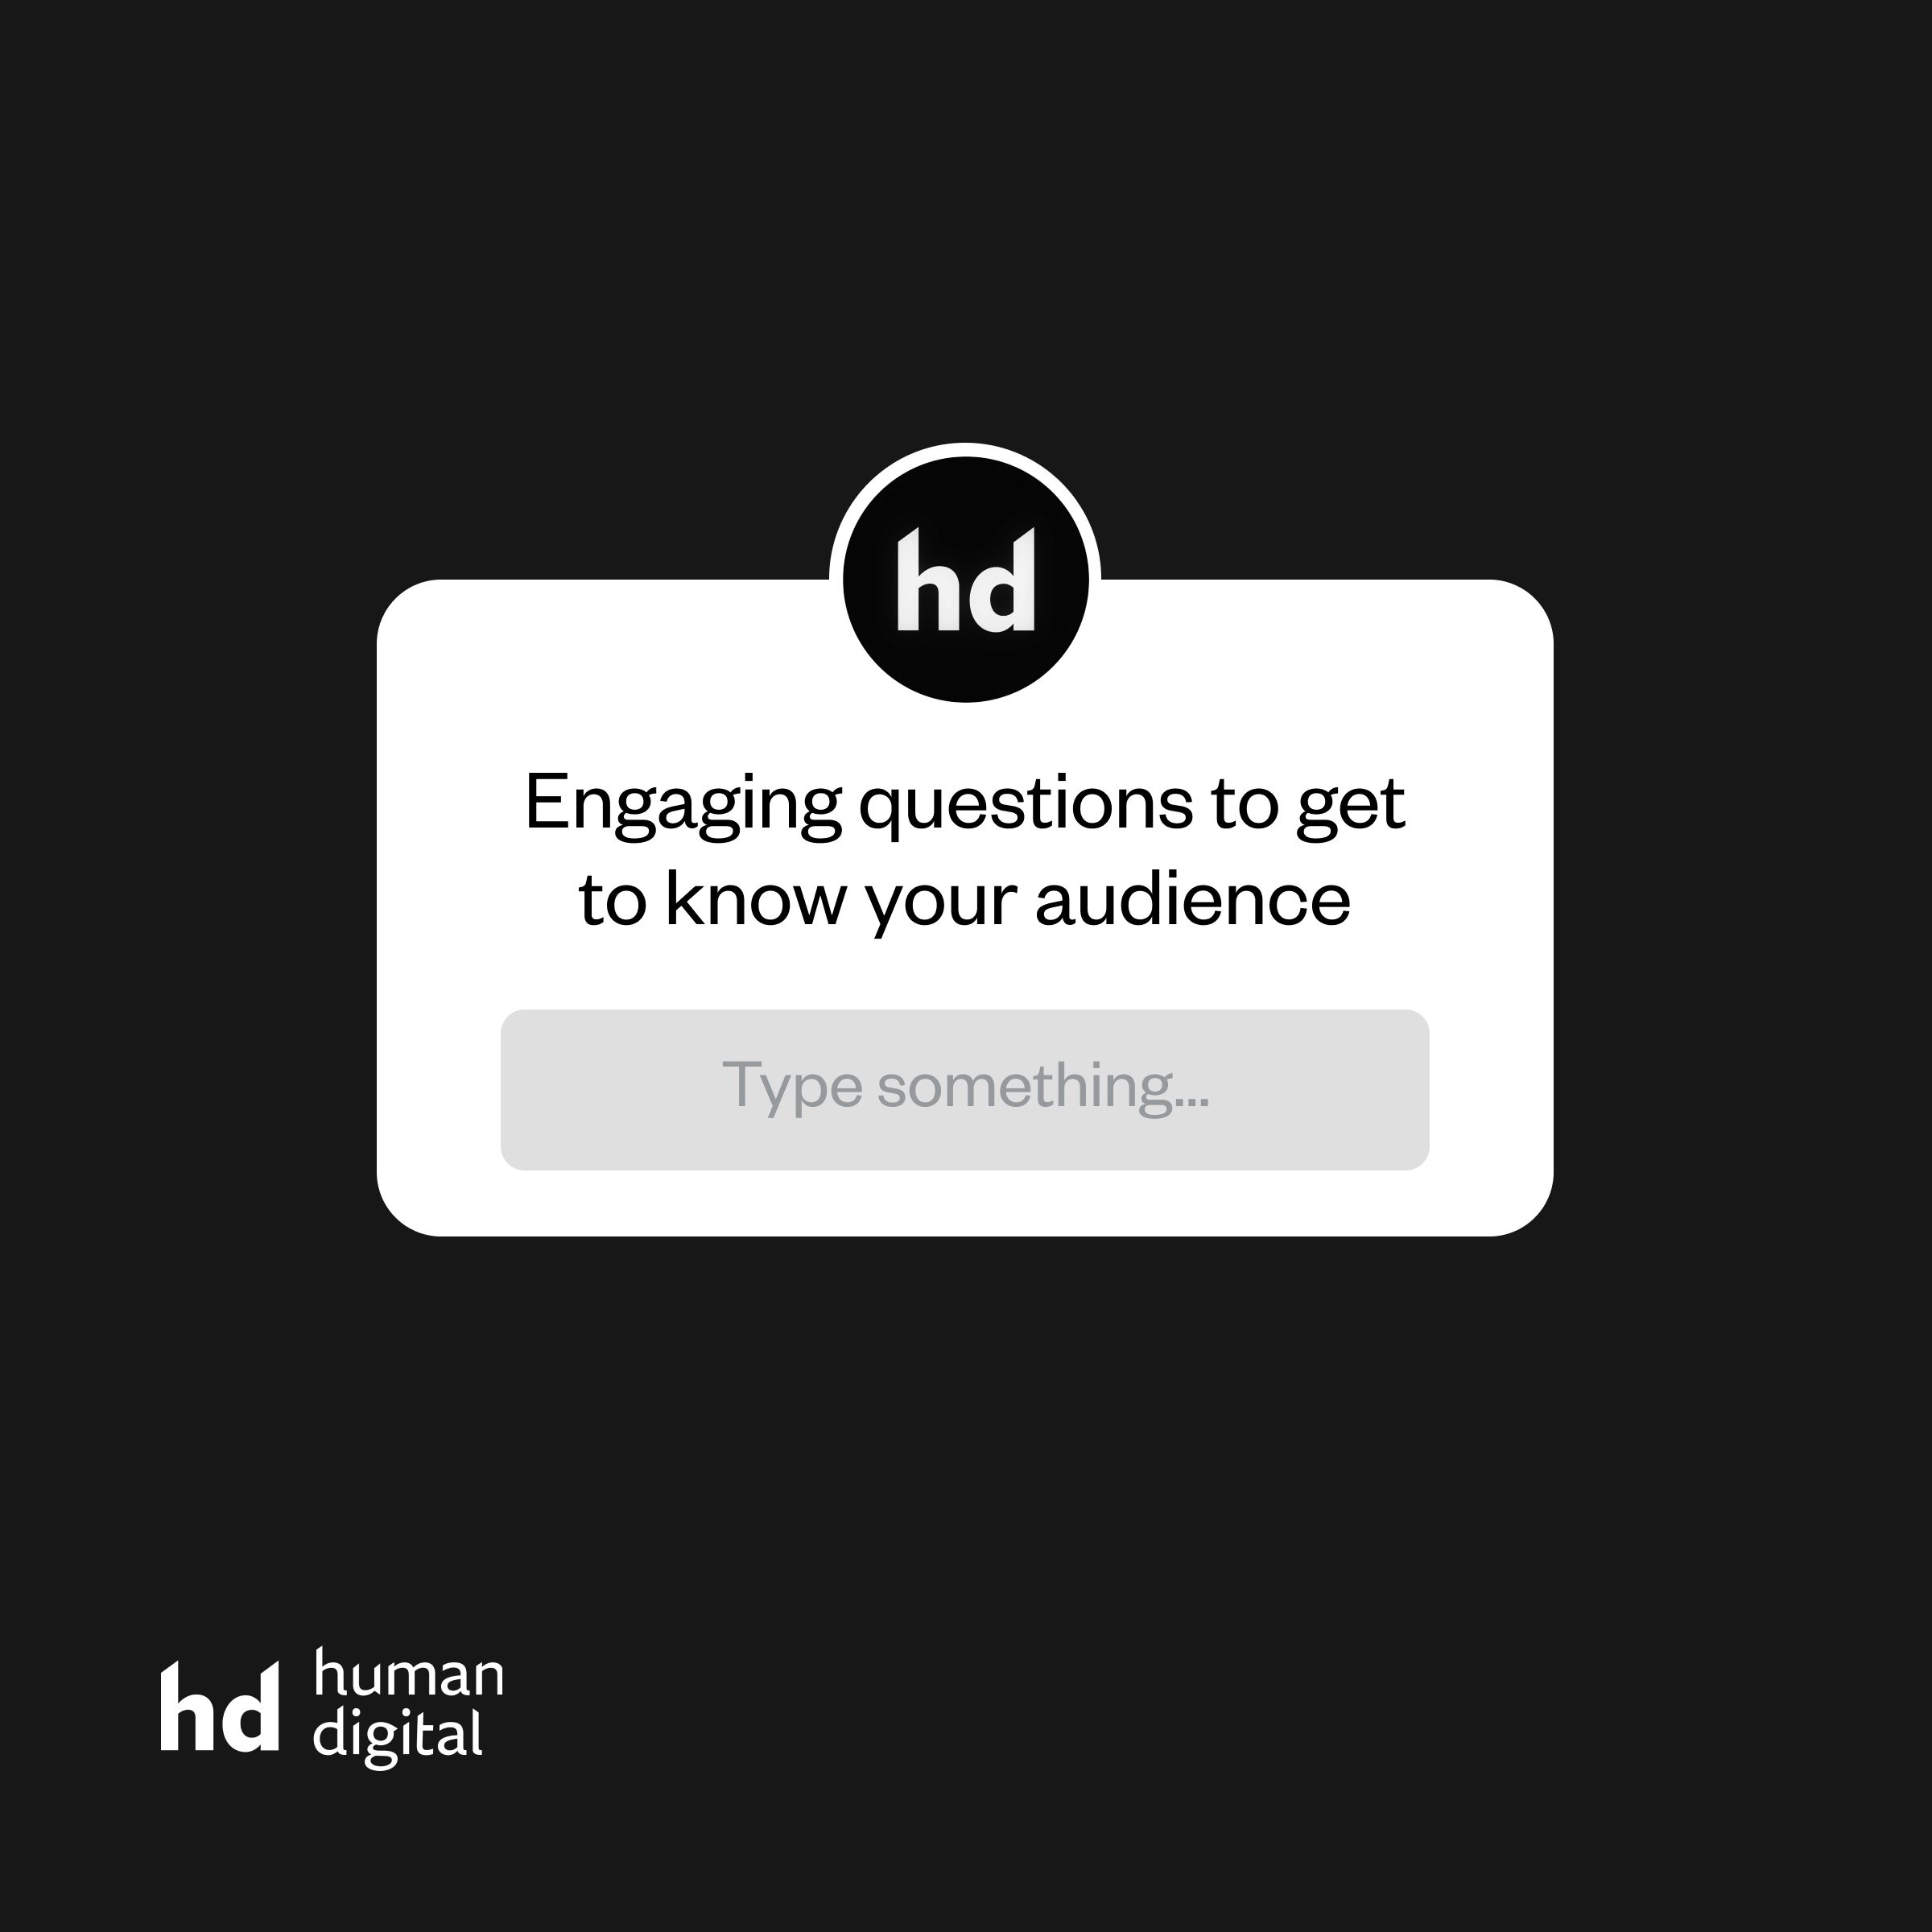 Engaging questions to get to know your audience